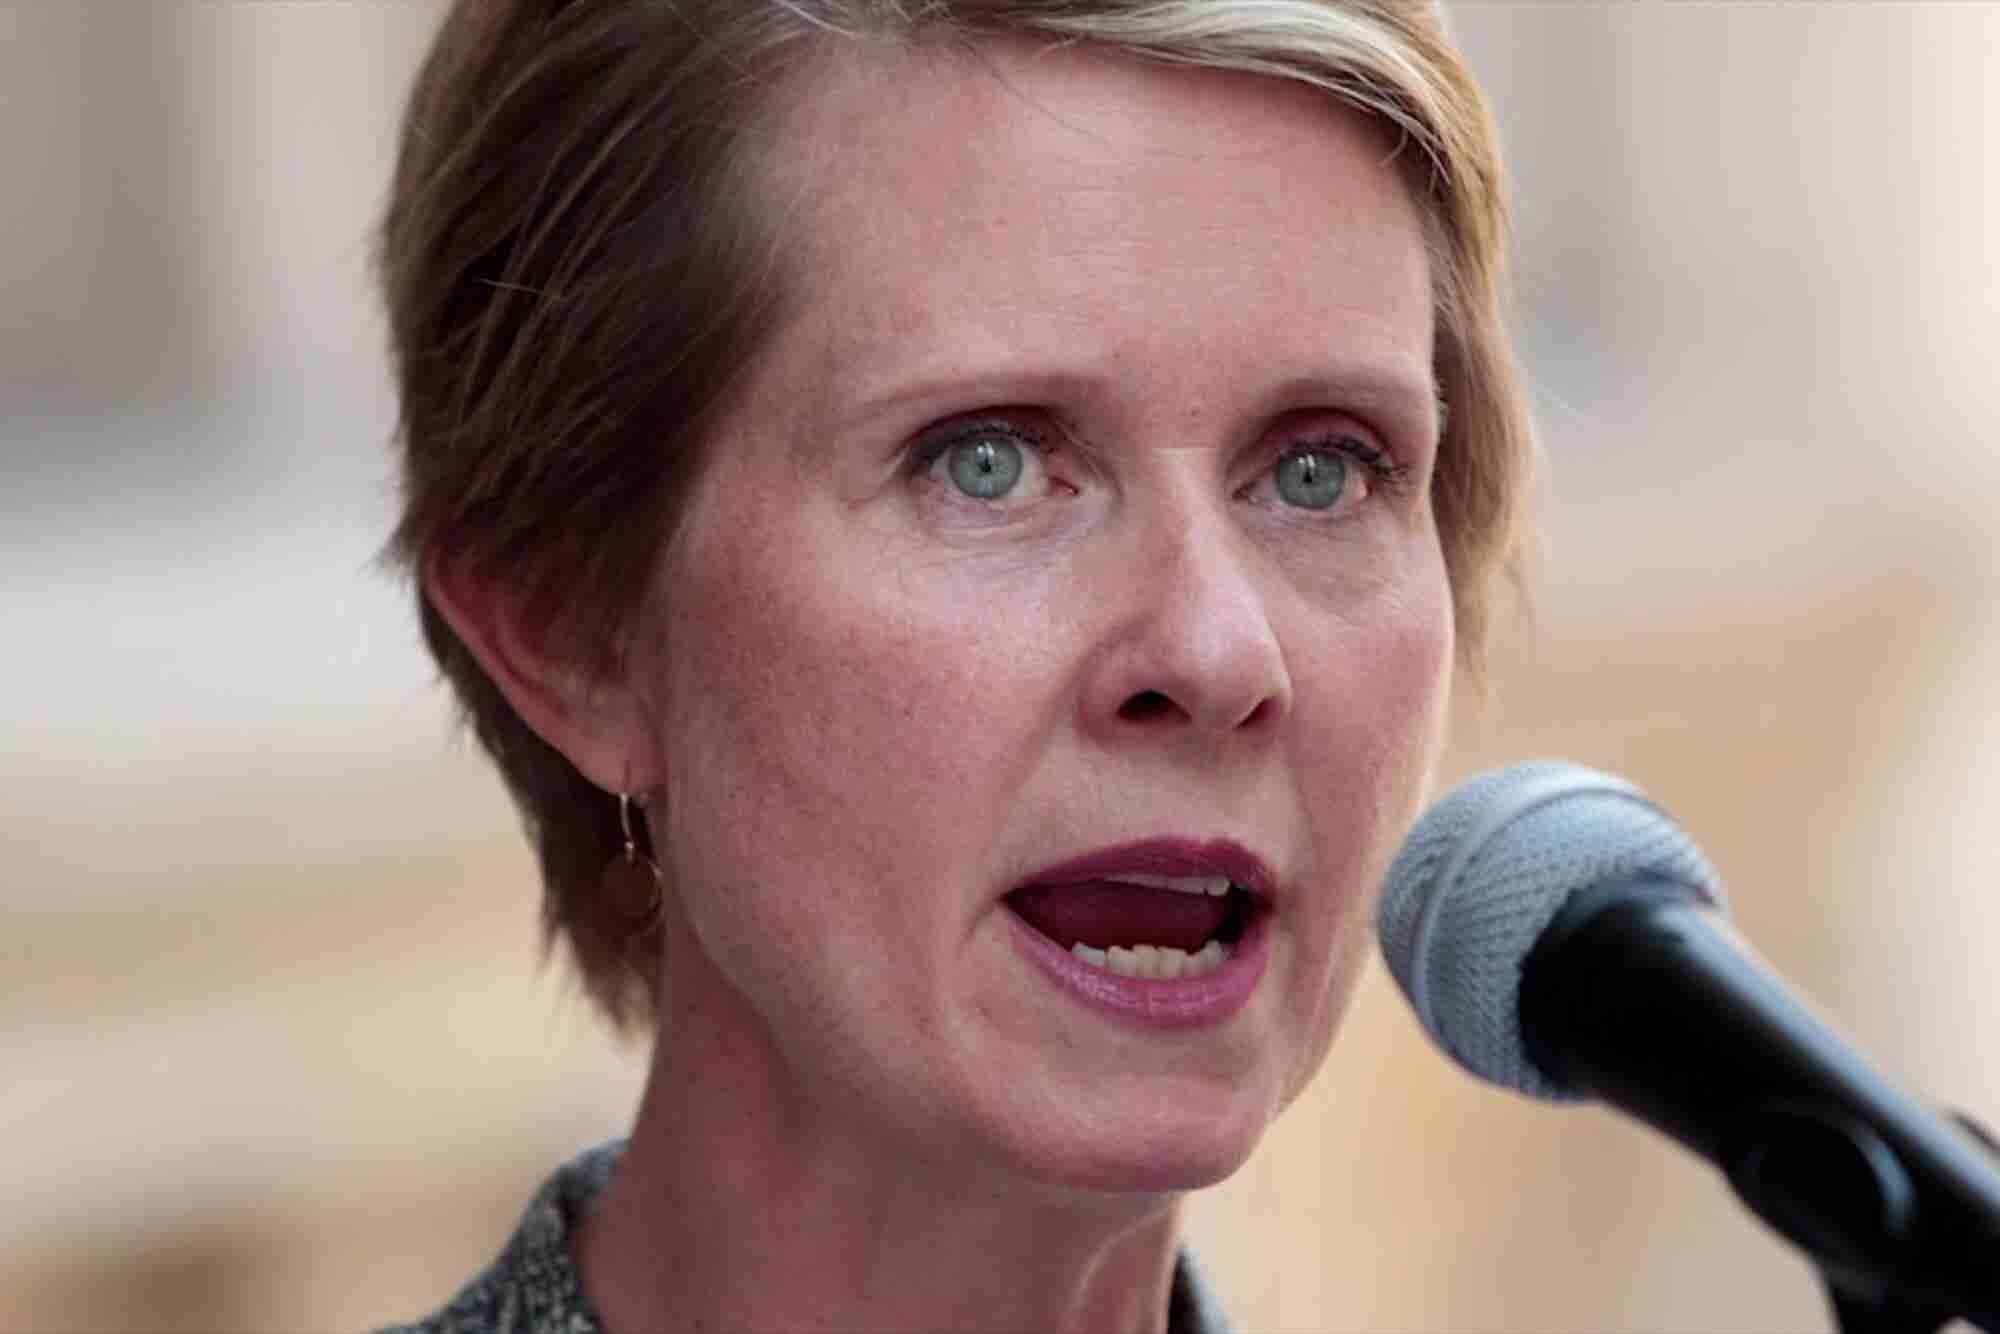 This Week in Weed: We Celebrate National Dab Day and Cynthia Nixon Raffles Off a Bong